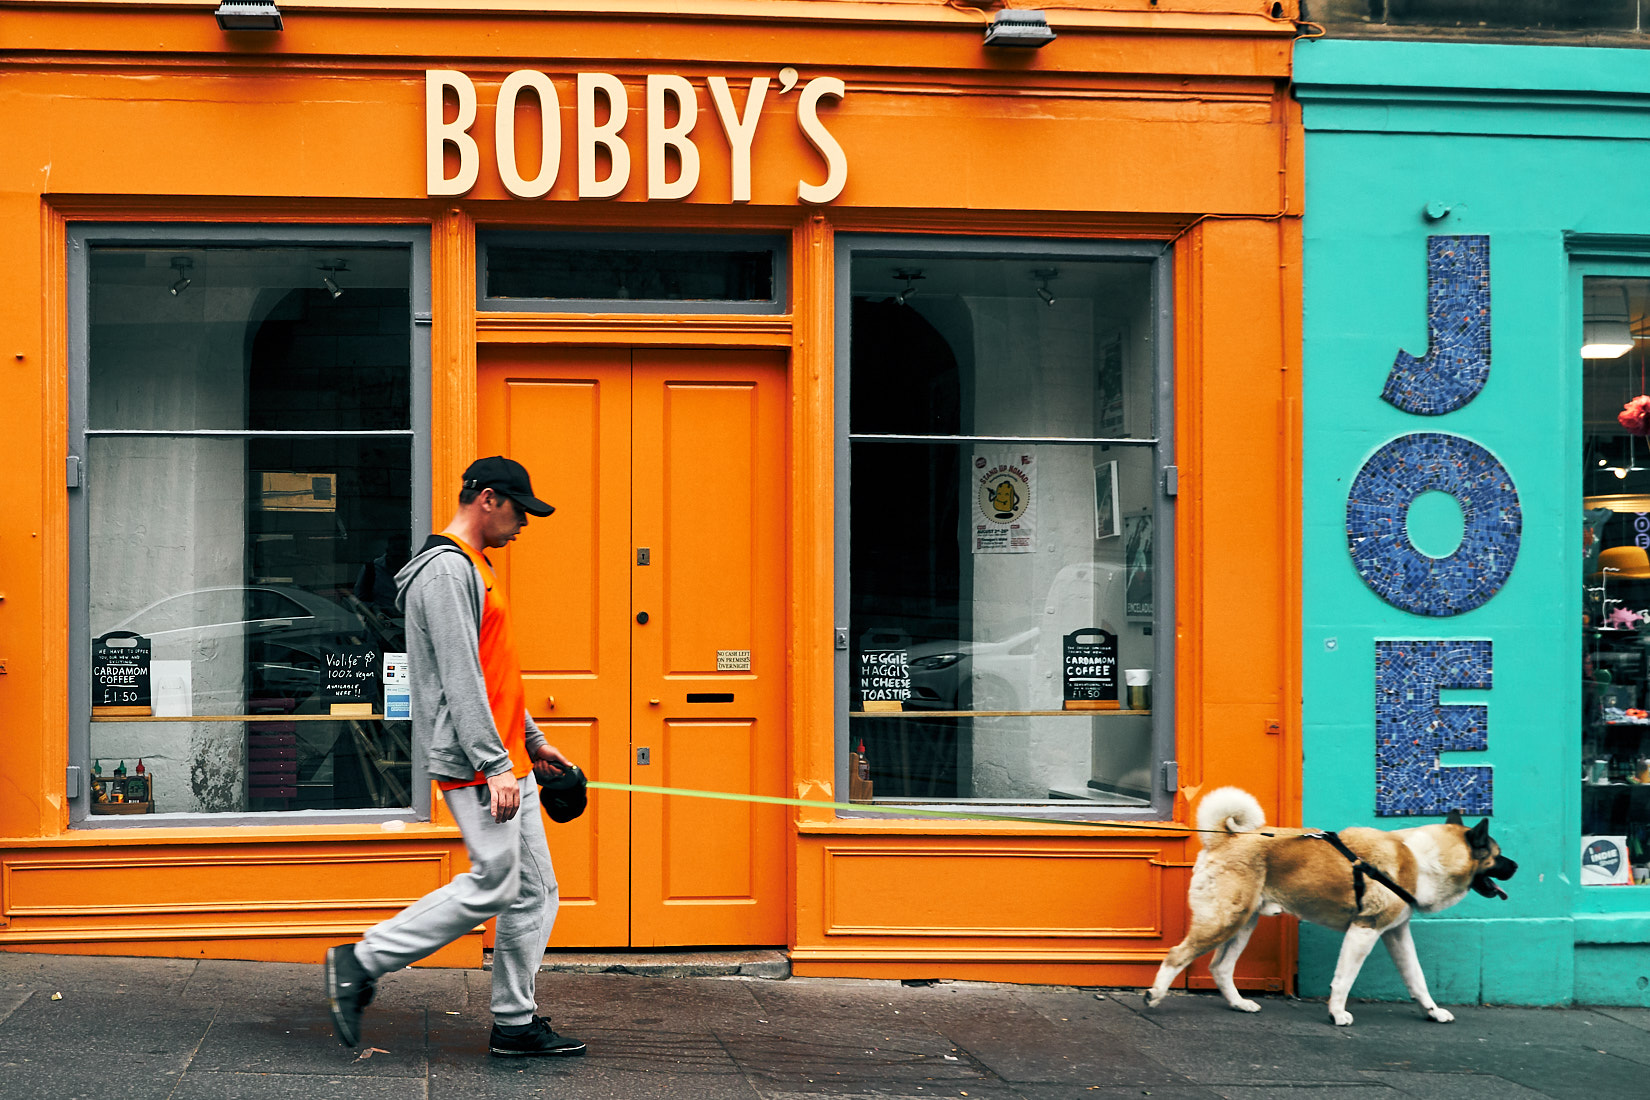 Bobby's Joe | Edinburgh